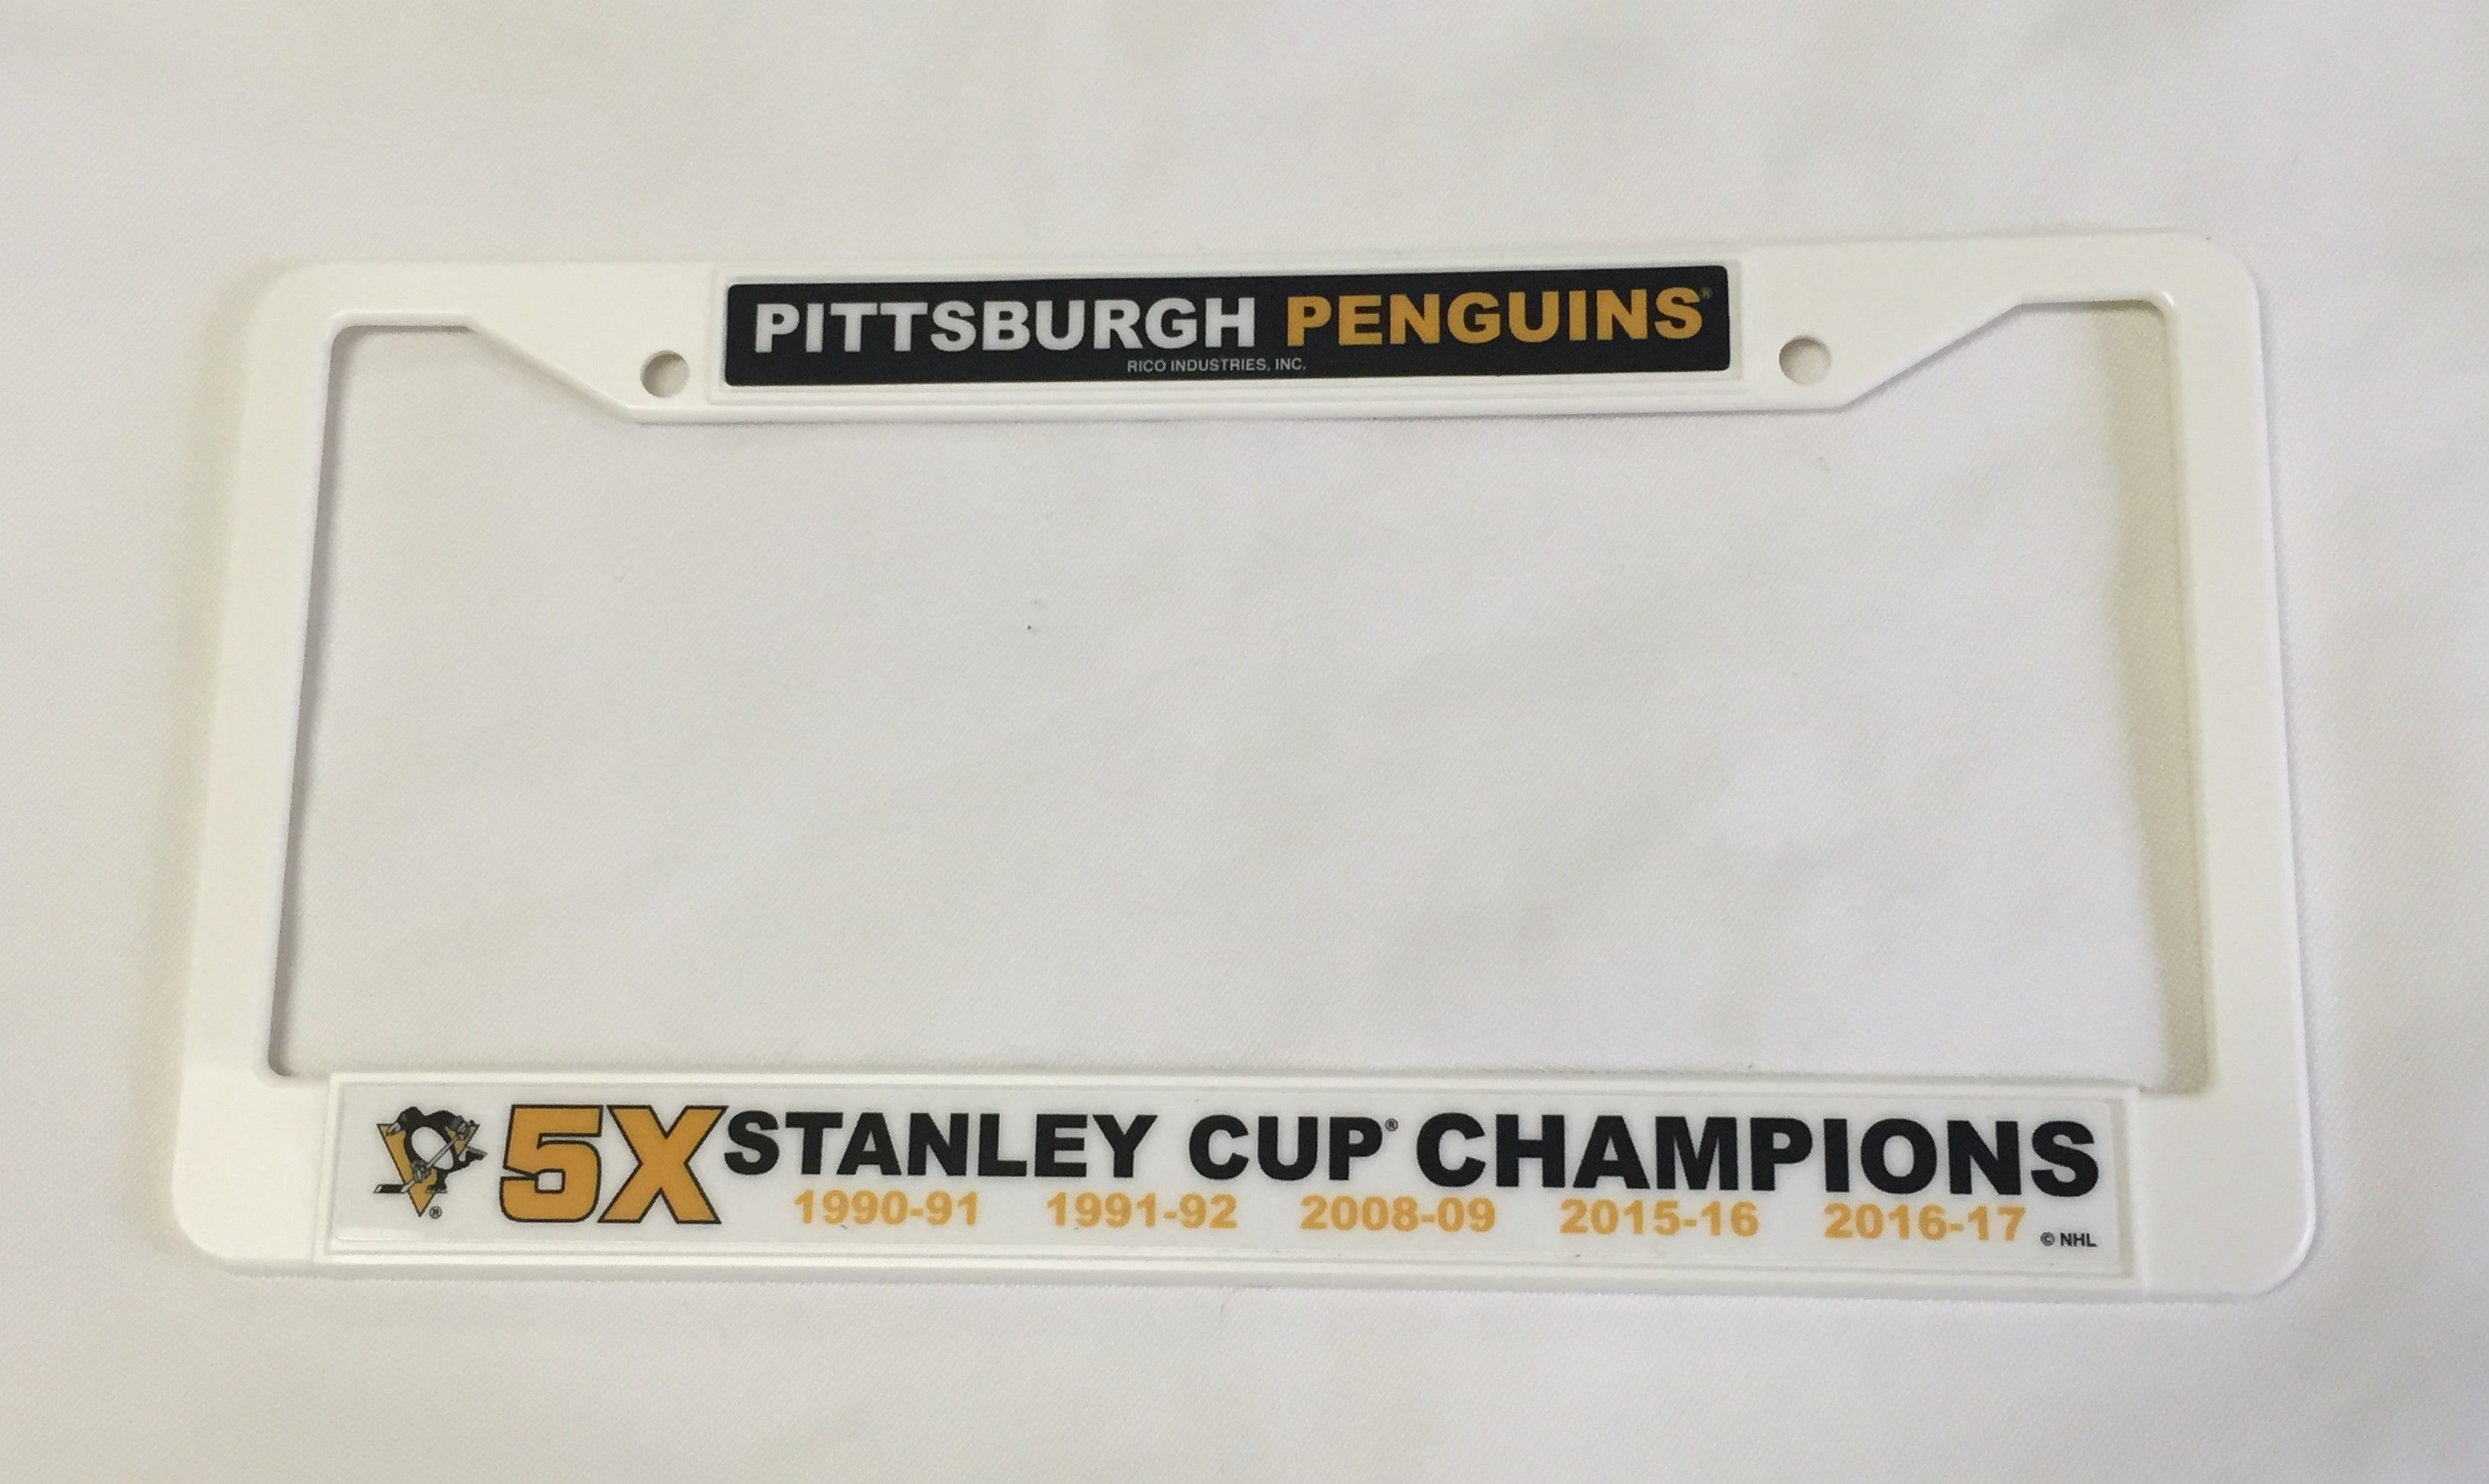 Pittsburgh Penguins 5X Stanley Cup Champions White Plastic License ...